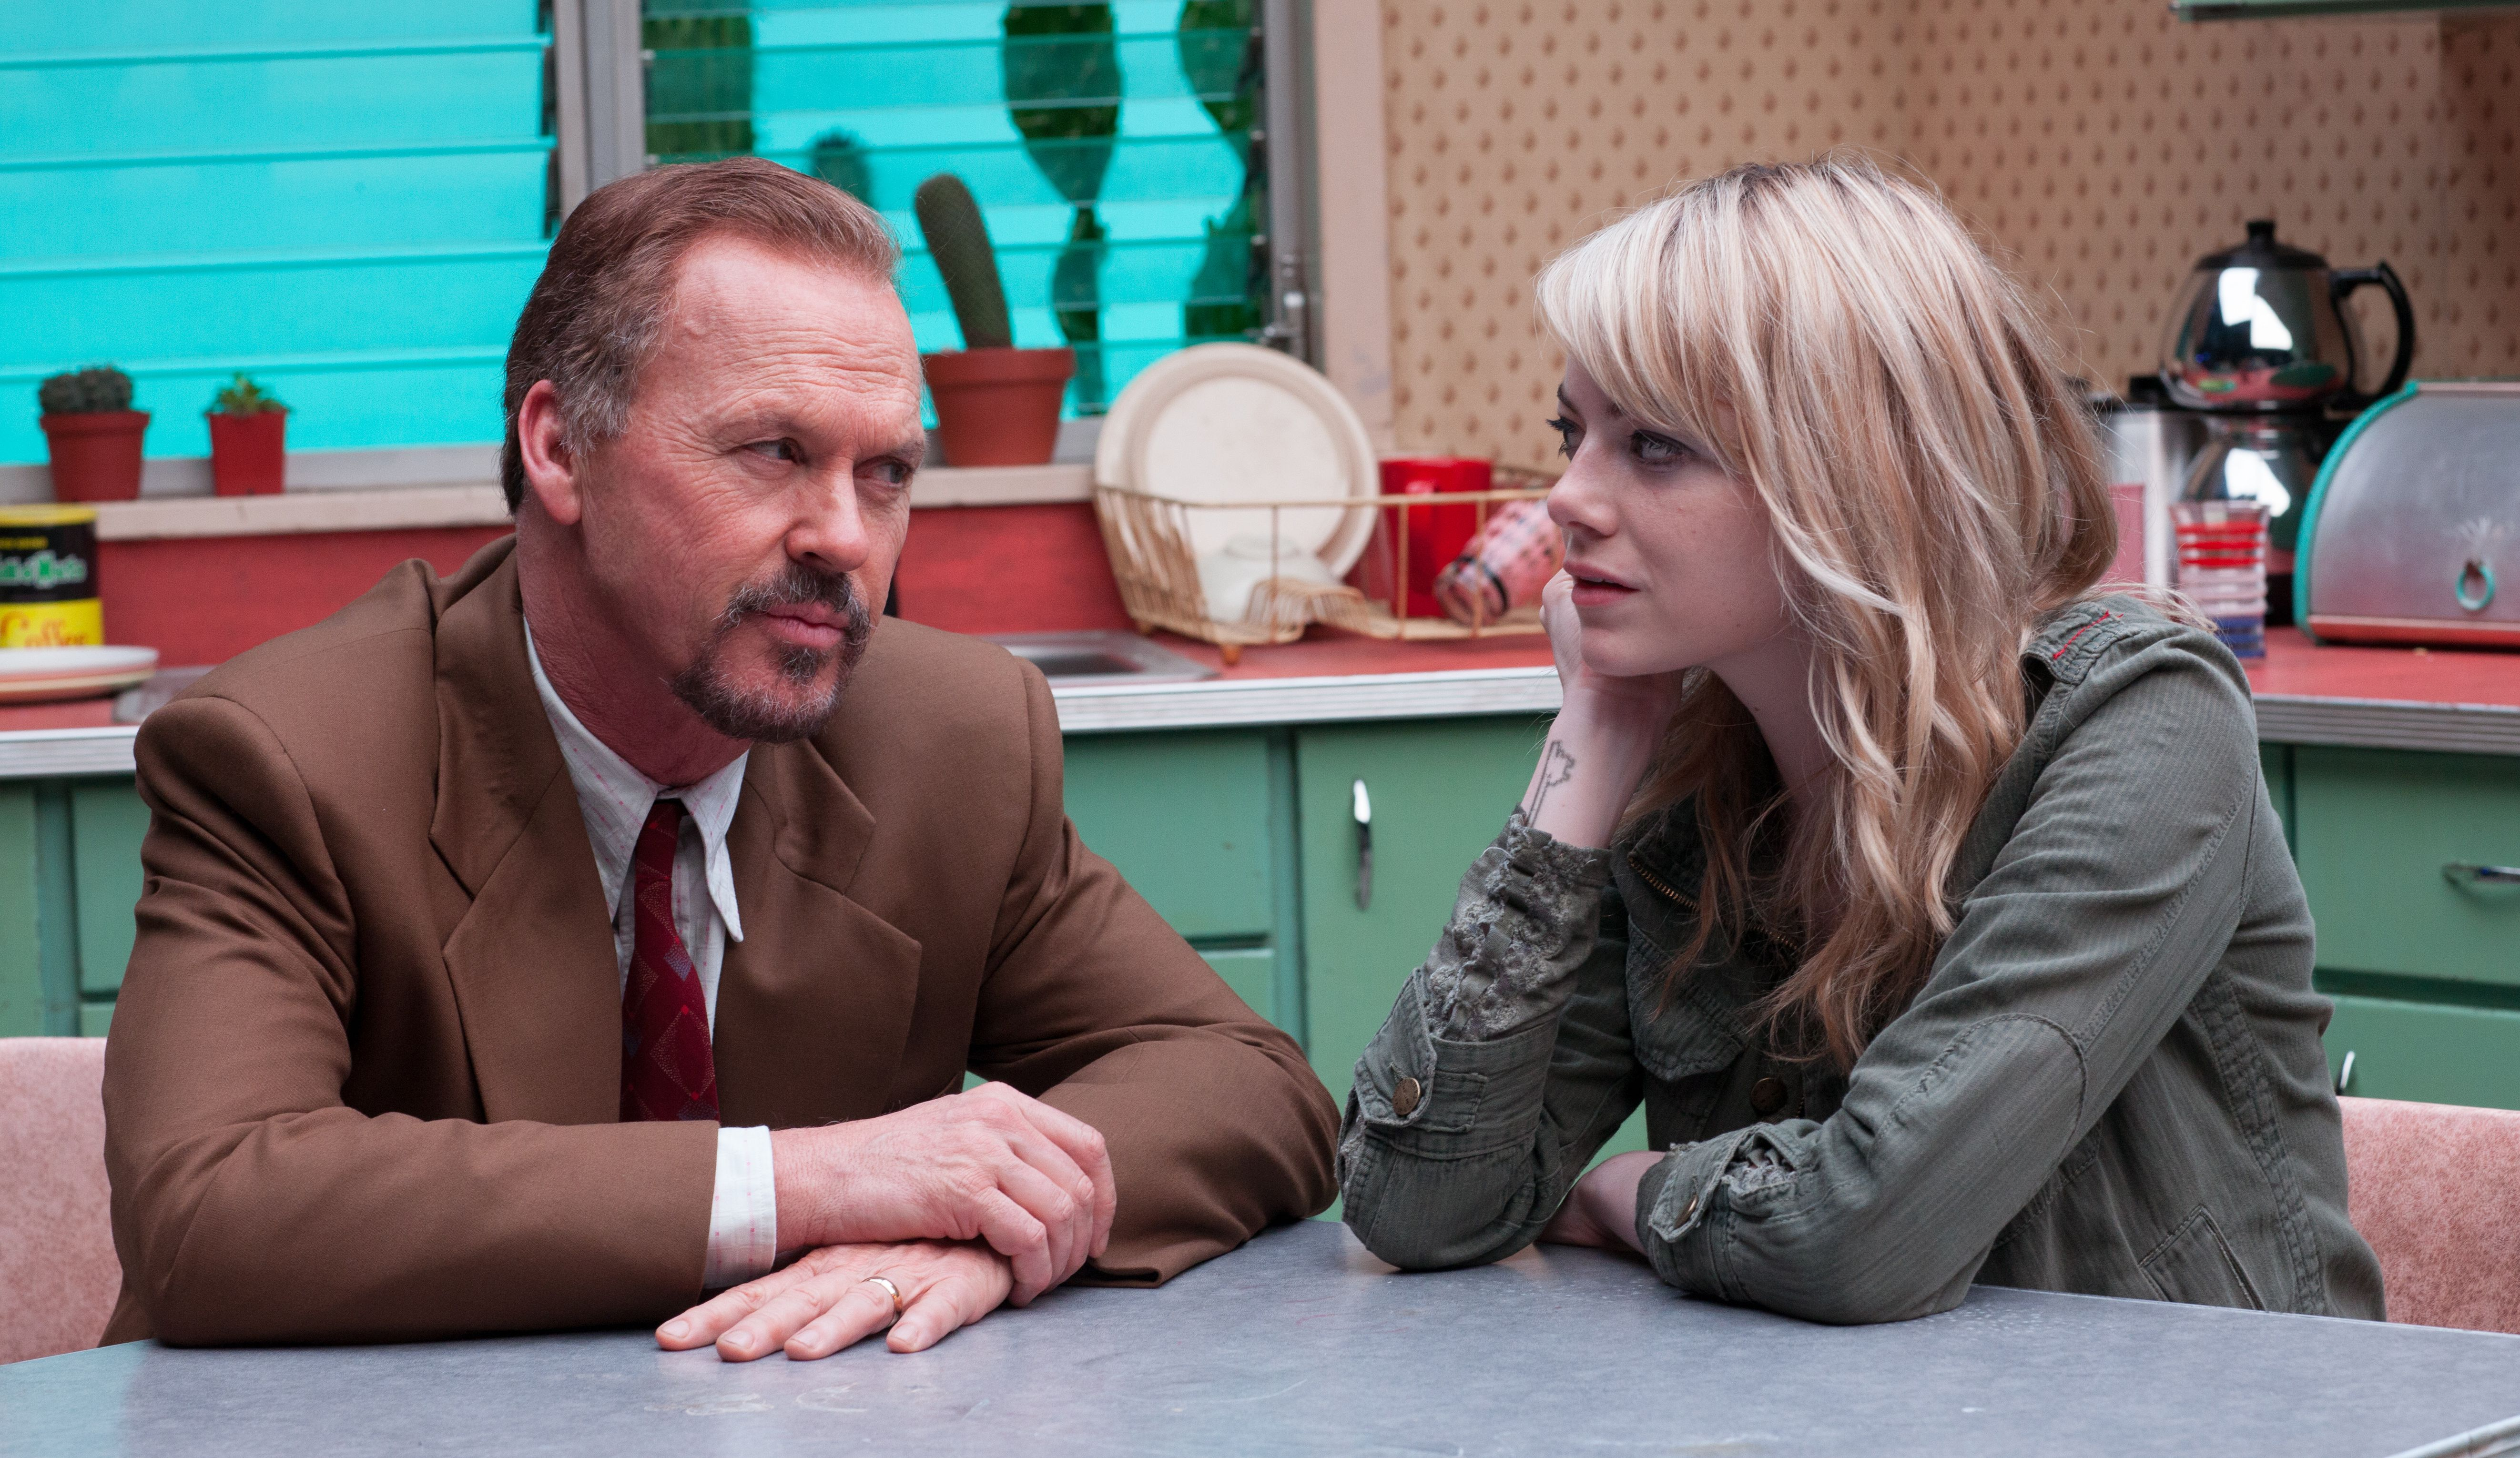 Michael Keaton and Emma Stone have a chat as Riggan and Sam